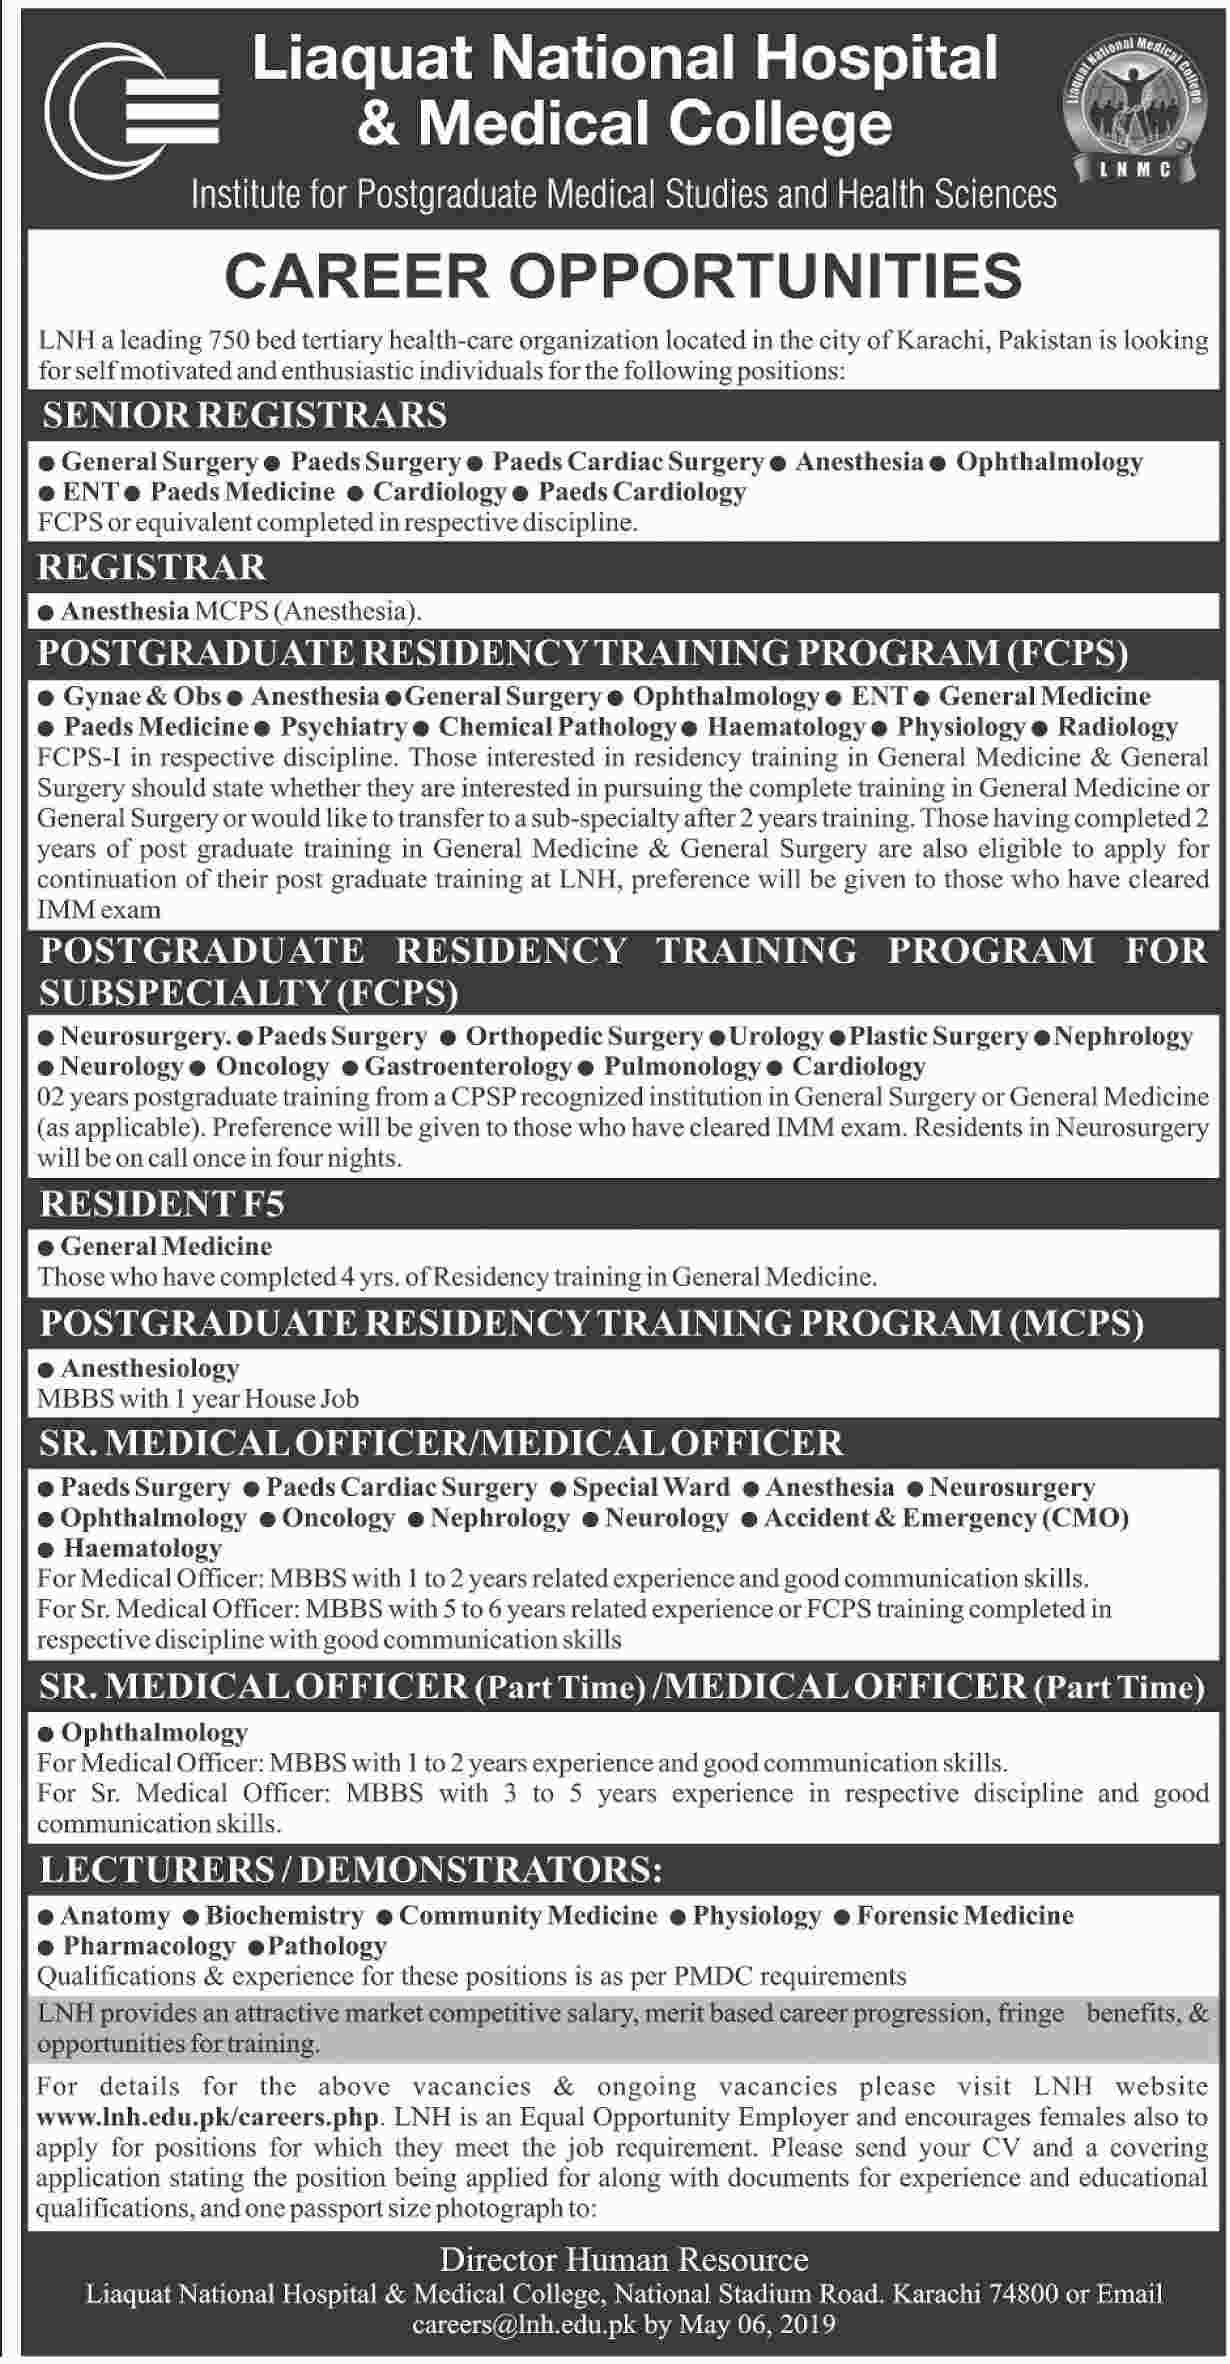 Get a Latest Jobs in Liaquat National Hospital 2019